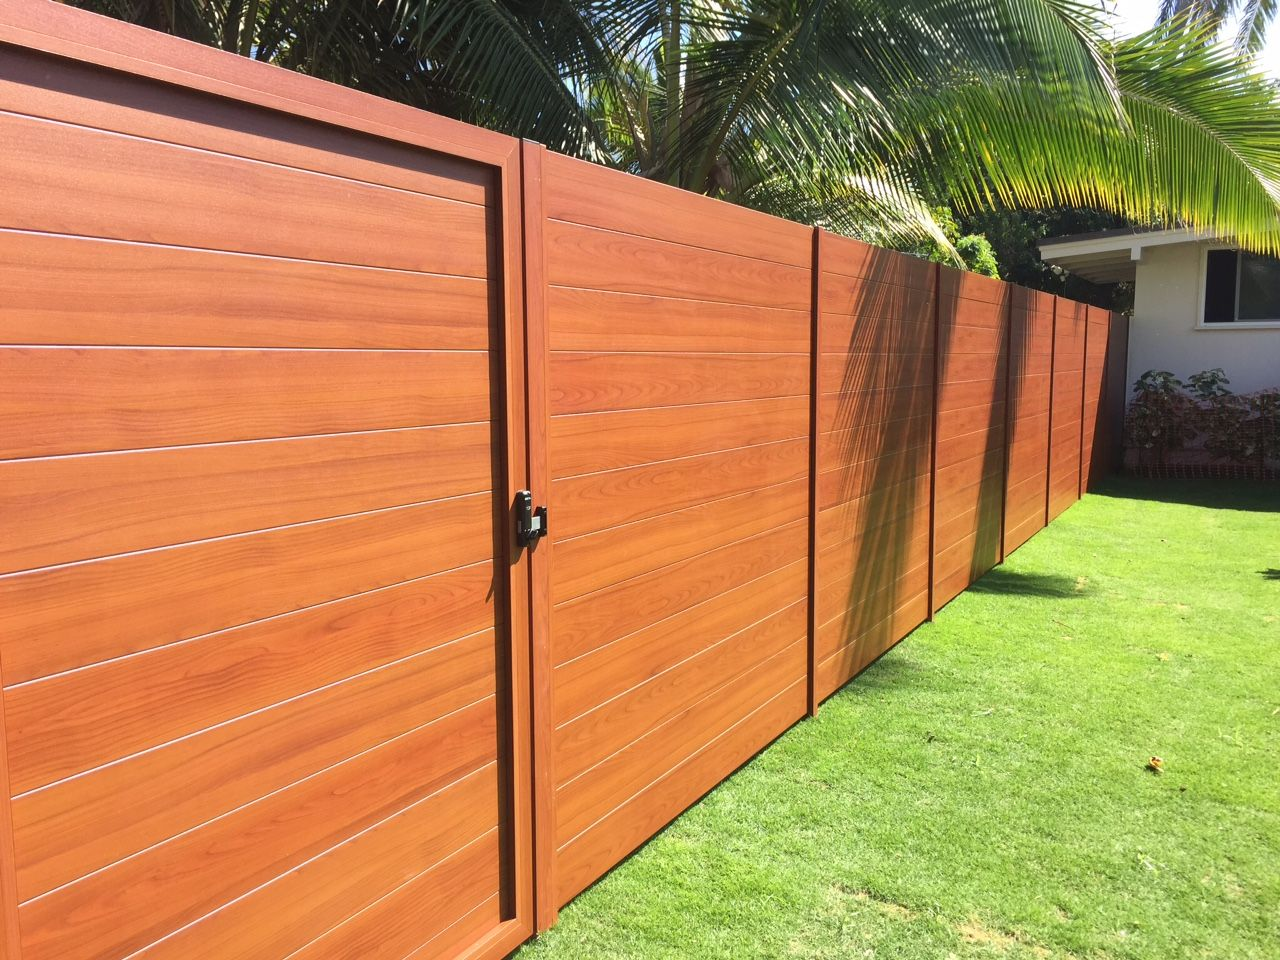 Knotwood aluminum gates are durable with a tough texture